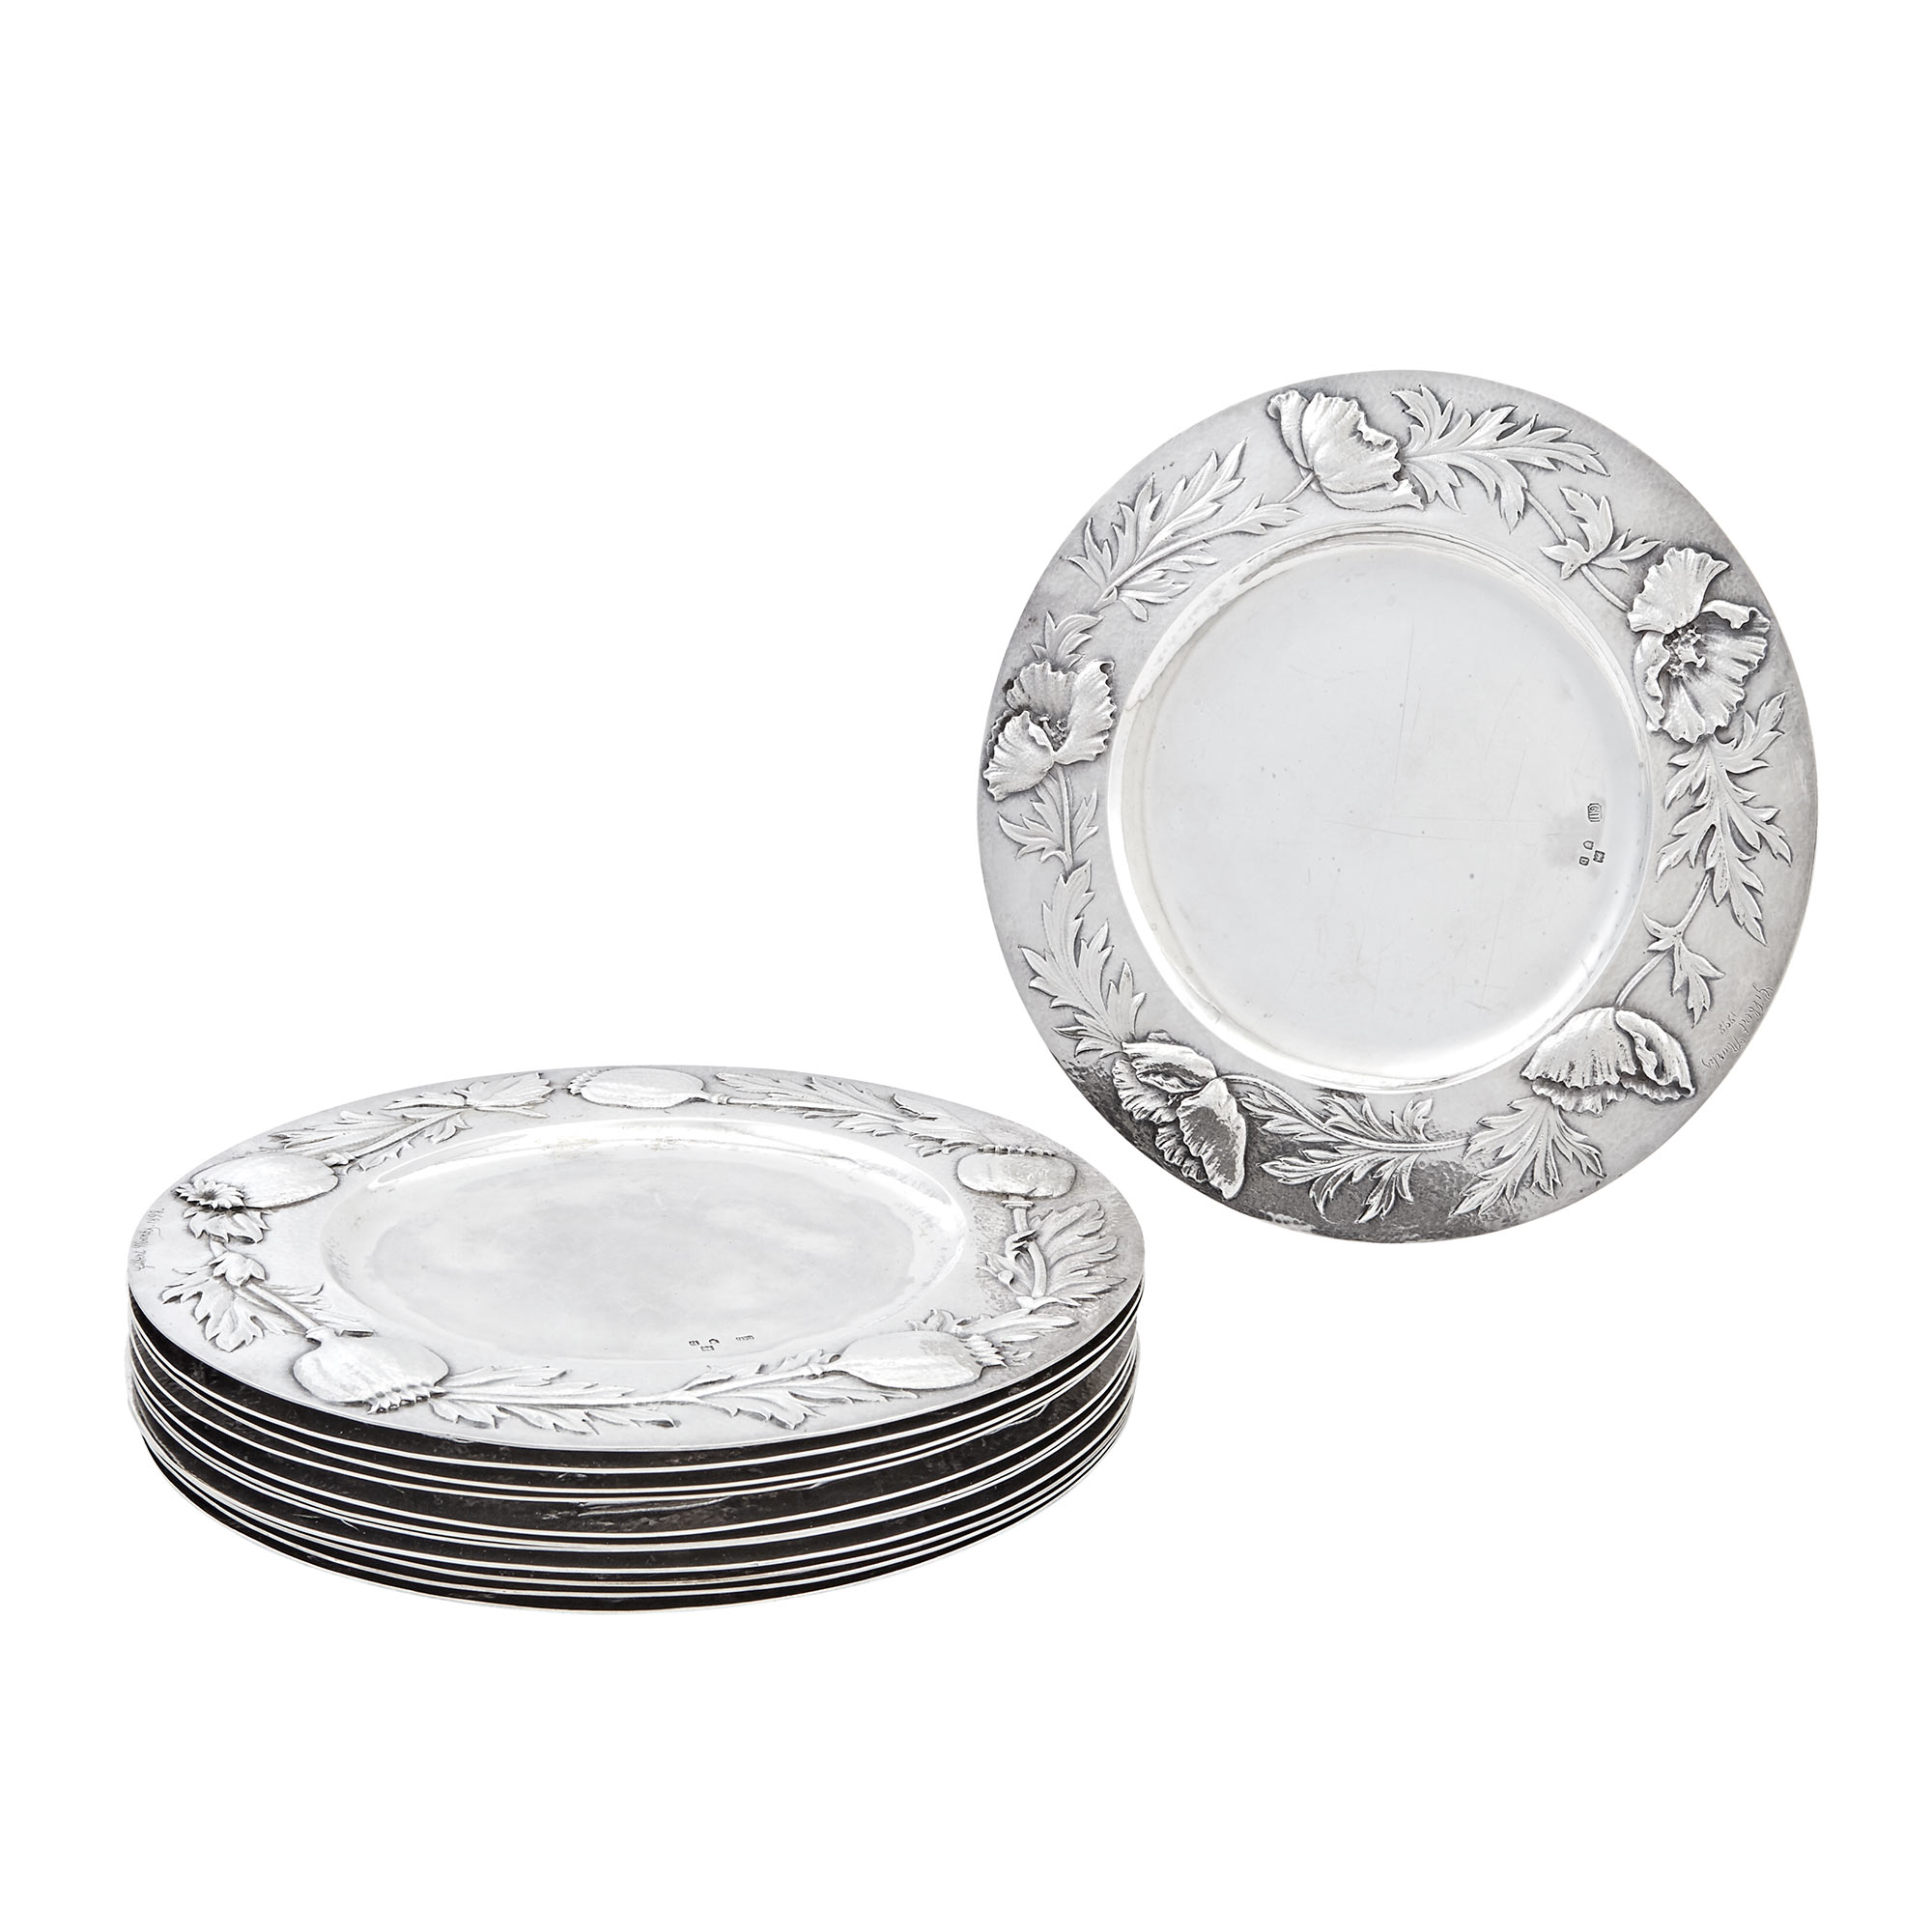 Lot image - Set of Twelve English Sterling Silver Chargers    Gilbert Marks, London, 1897  Each circular, the border embossed with floral specimen and incised signature and date 1898.  Diameter 8 5/8 inches, total approximately 122 ounces.